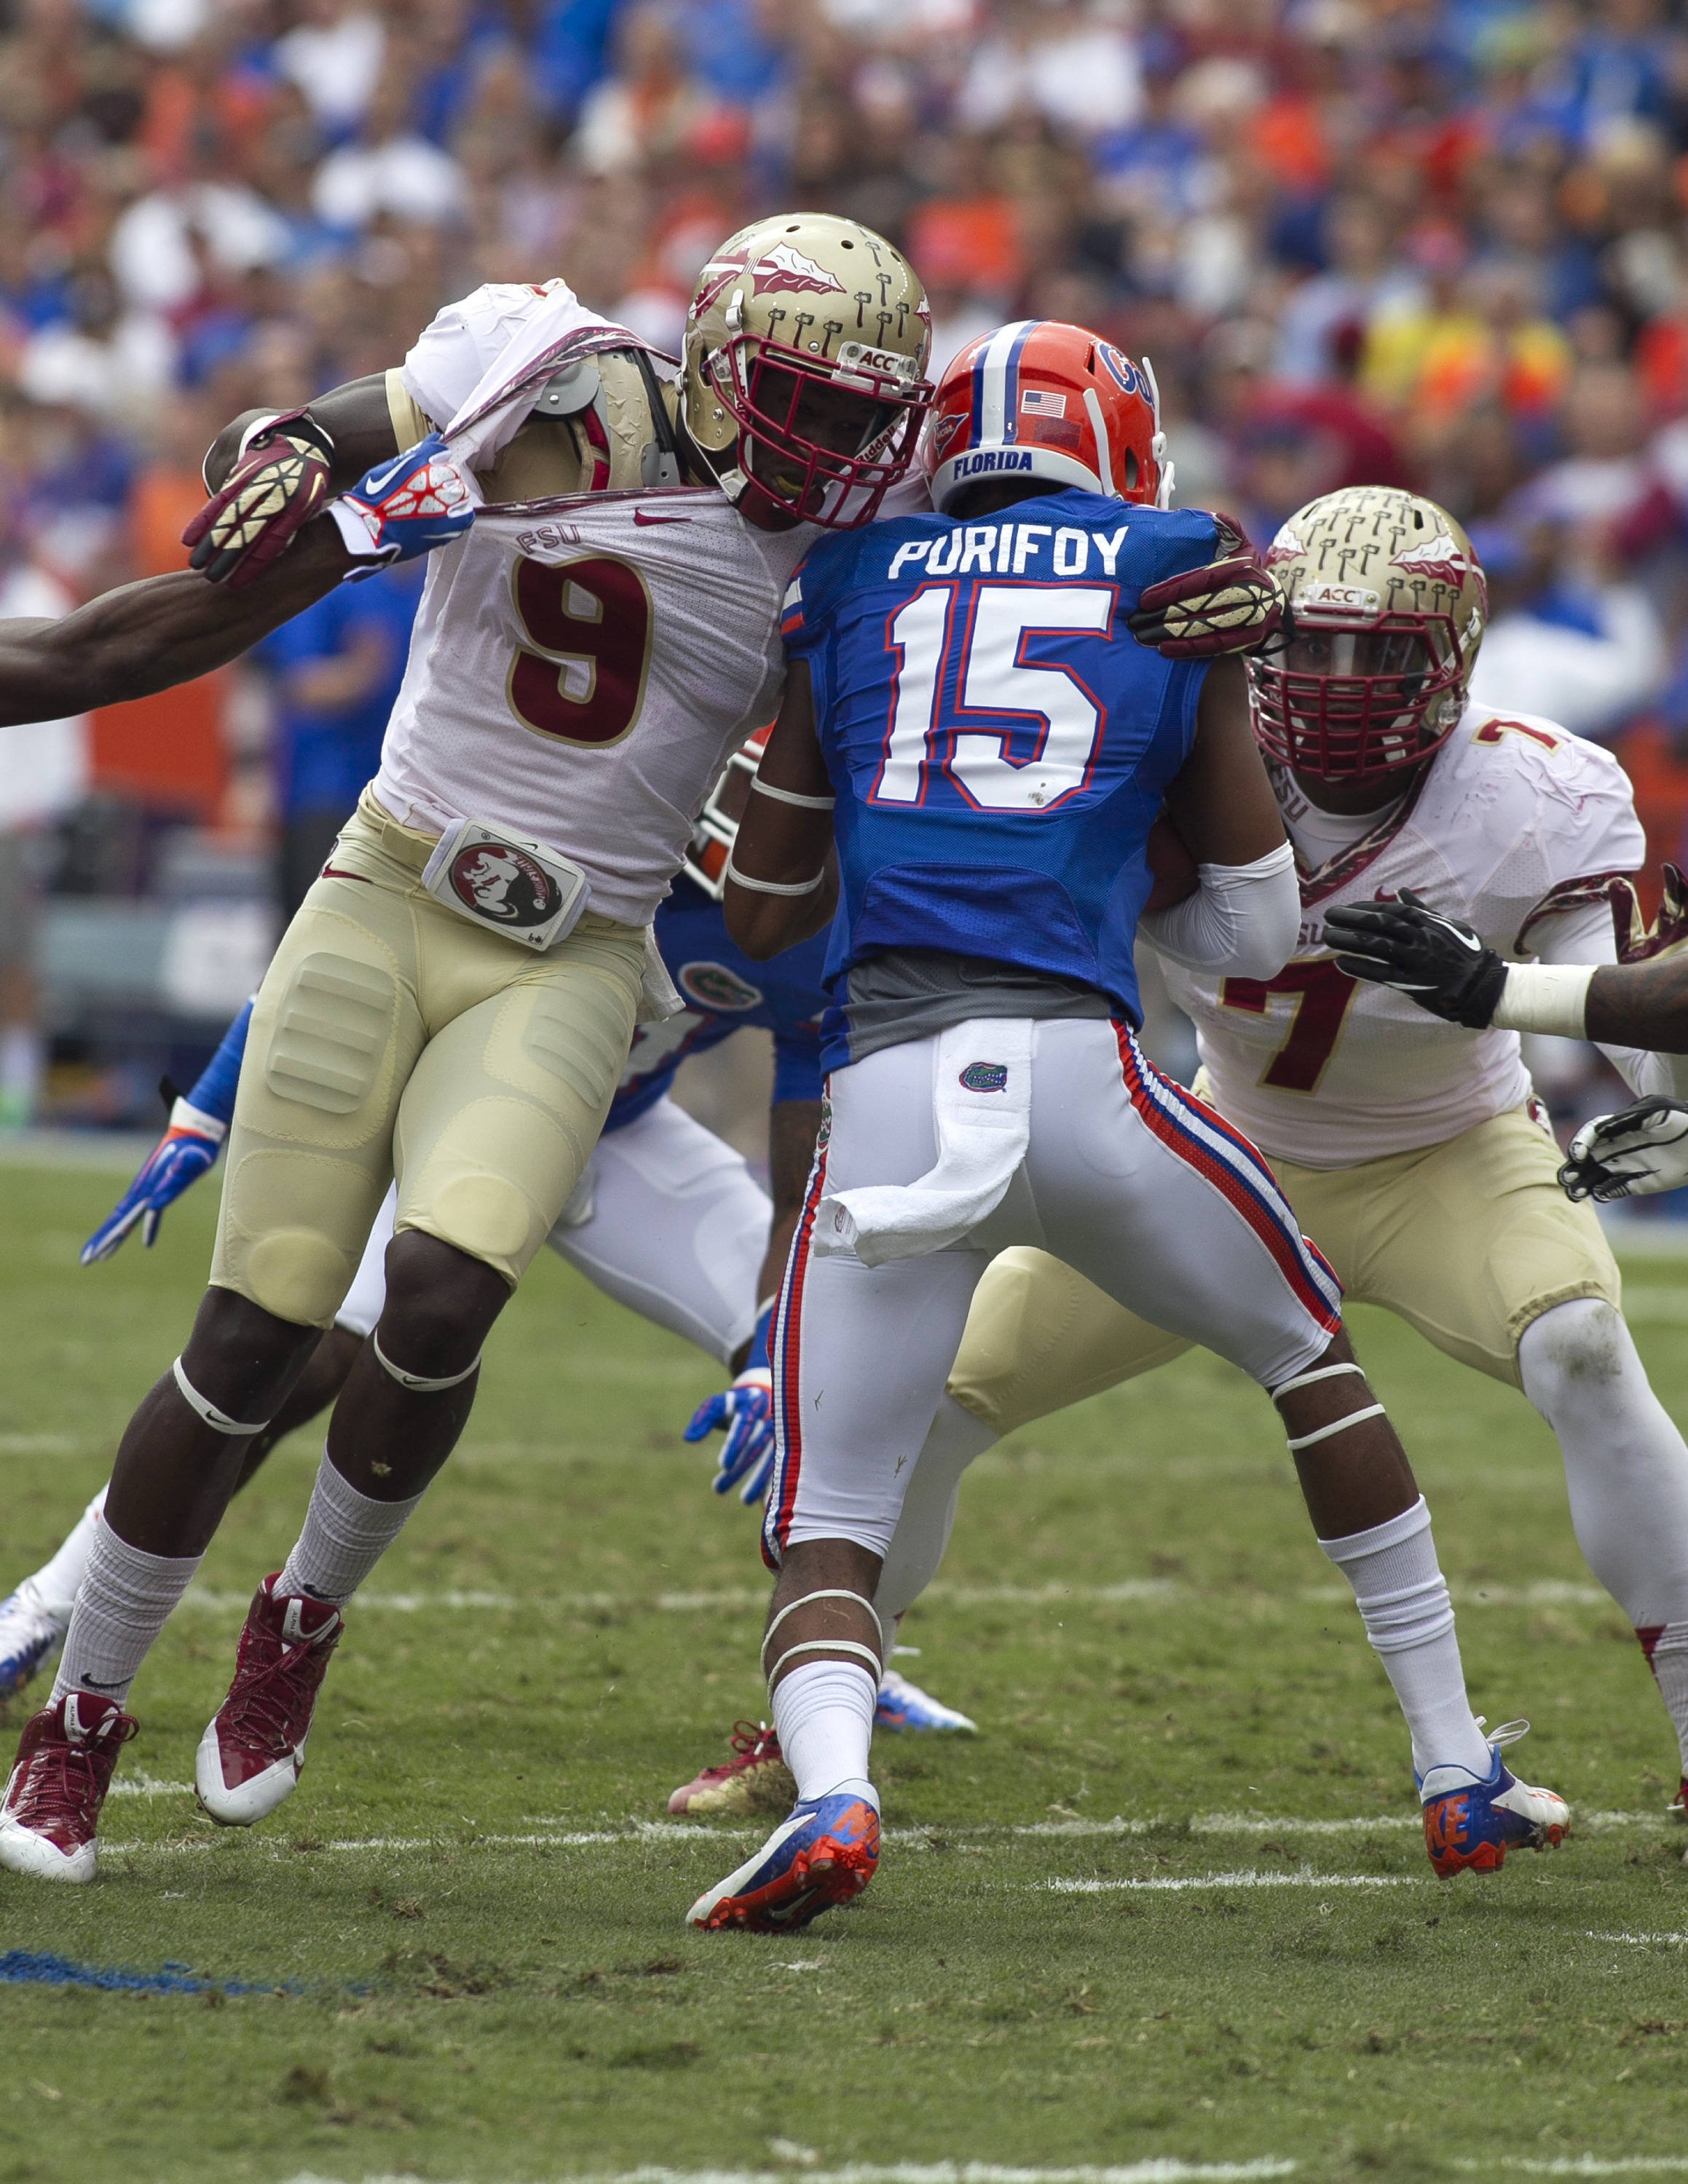 No place to run, FSU vs Florida, 11-30-13,  (Photo by Steve Musco)